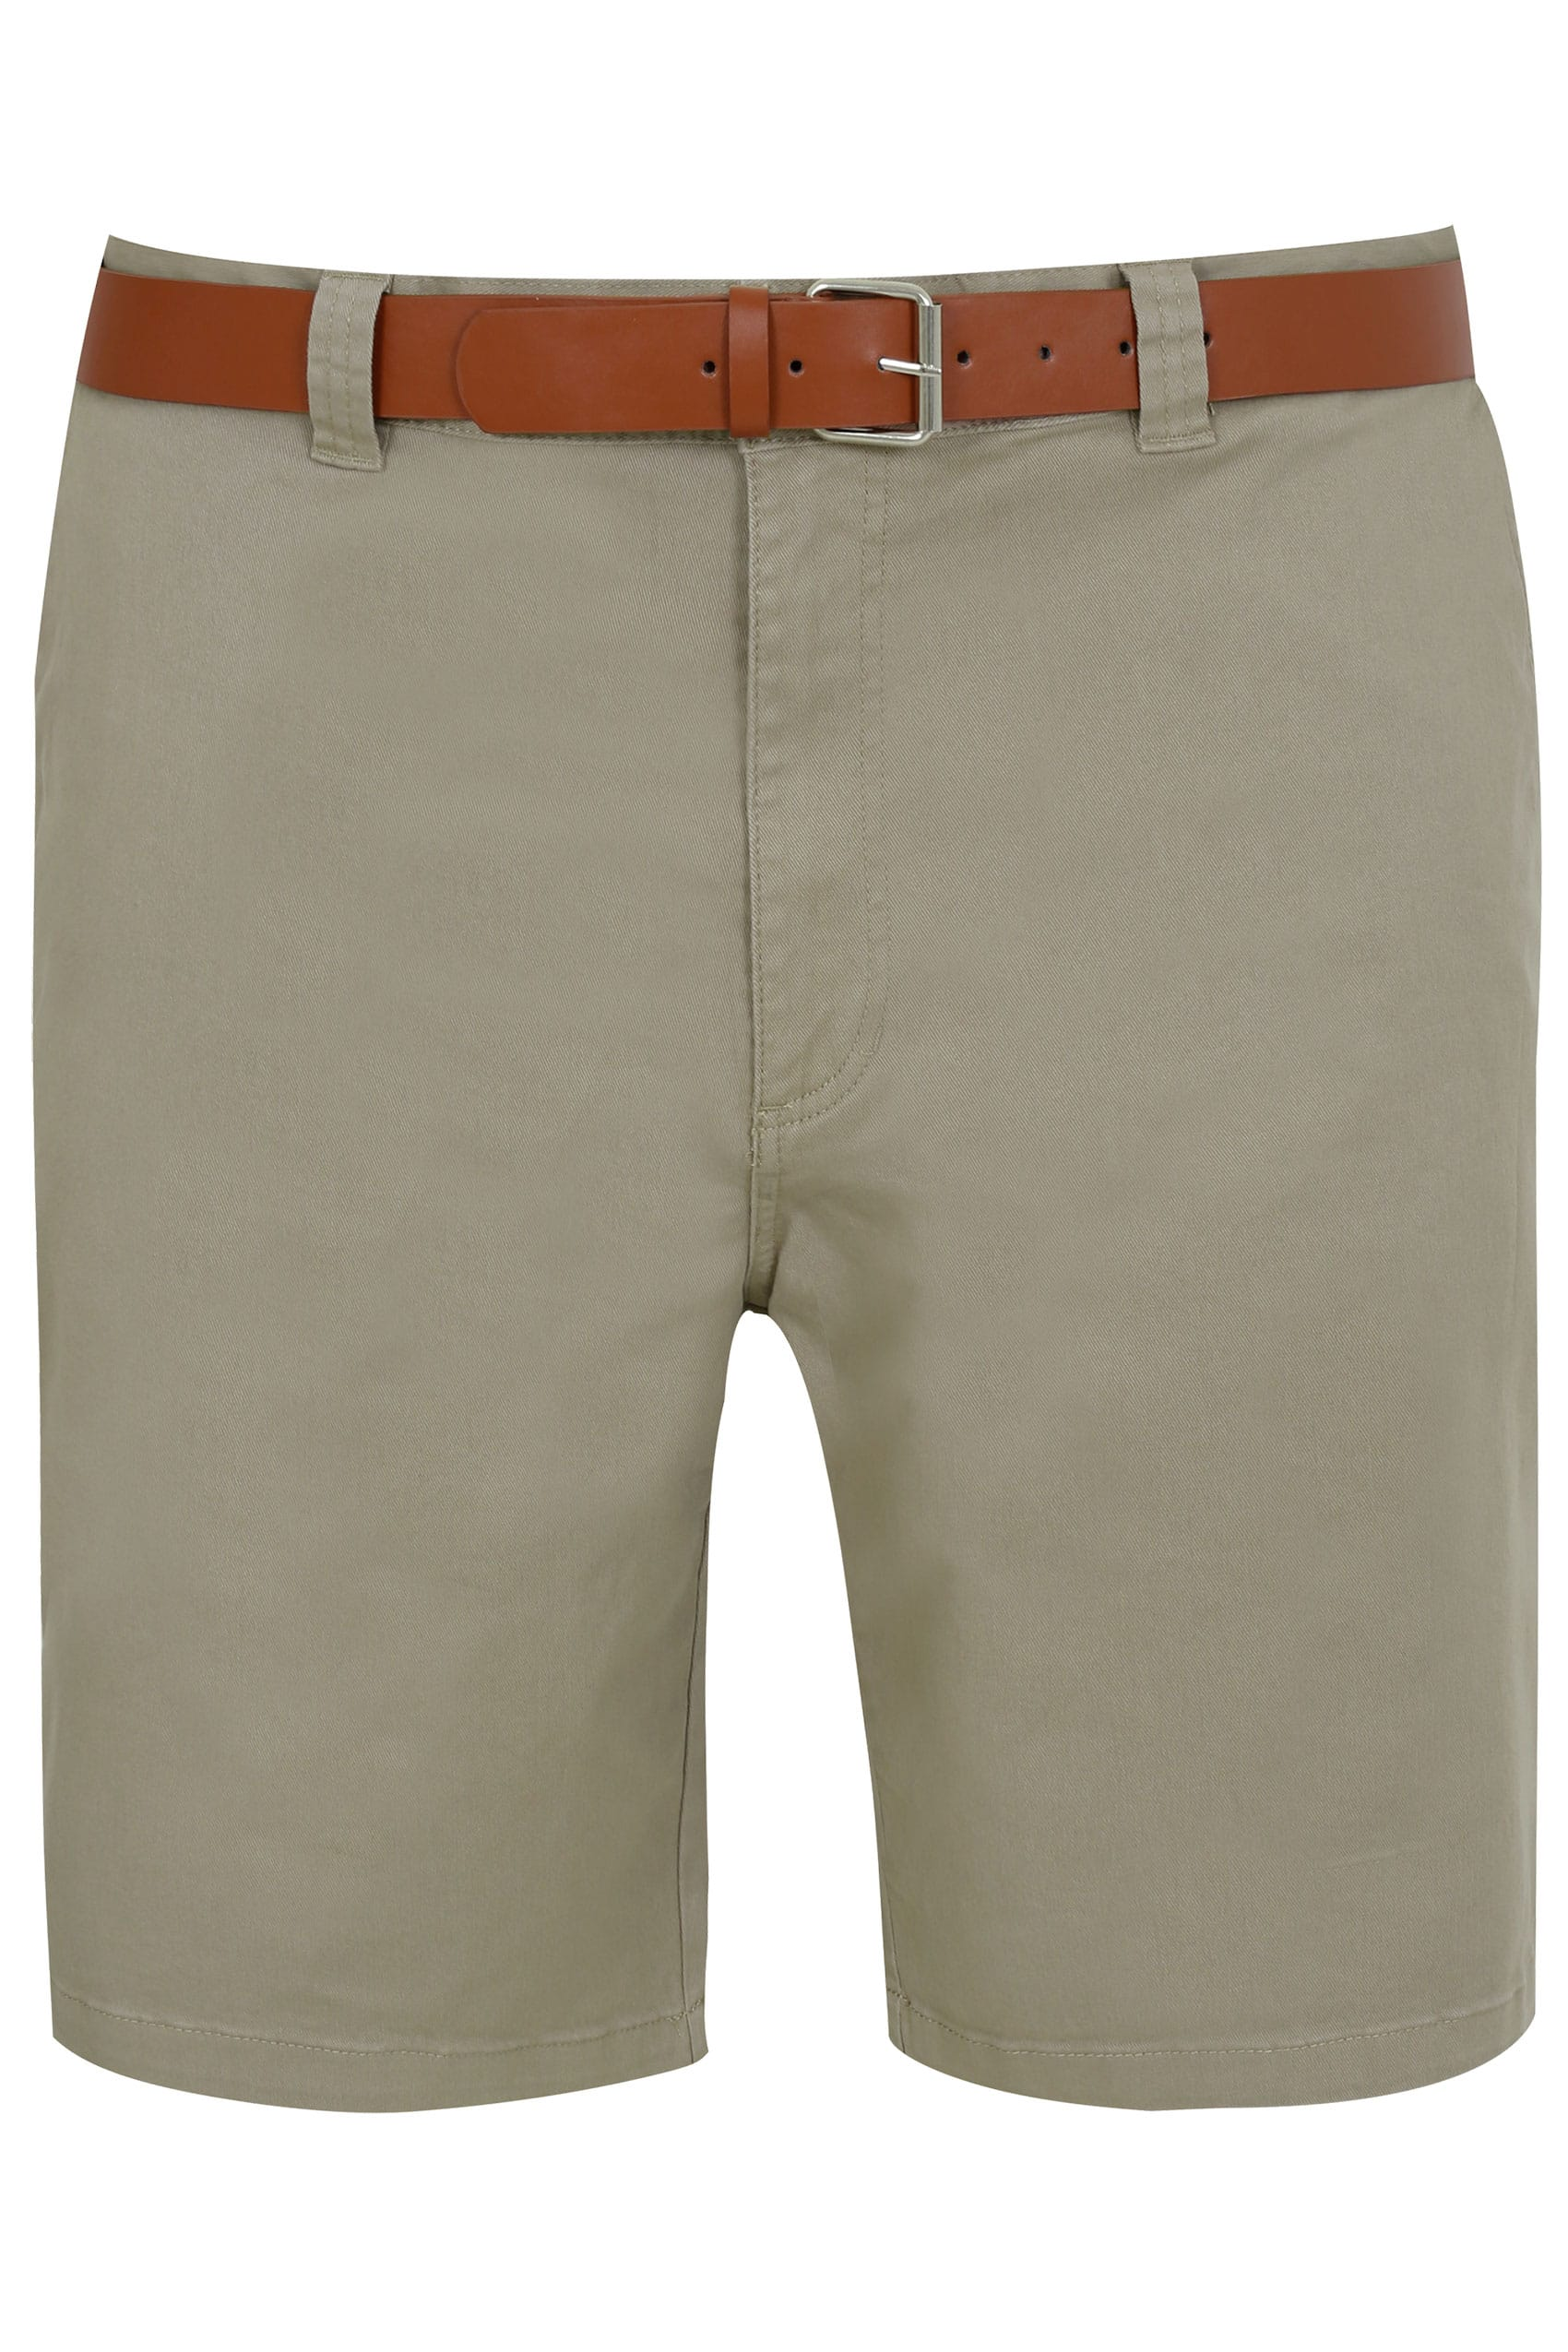 BadRhino Stone Five Pocket Chino Shorts With Belt